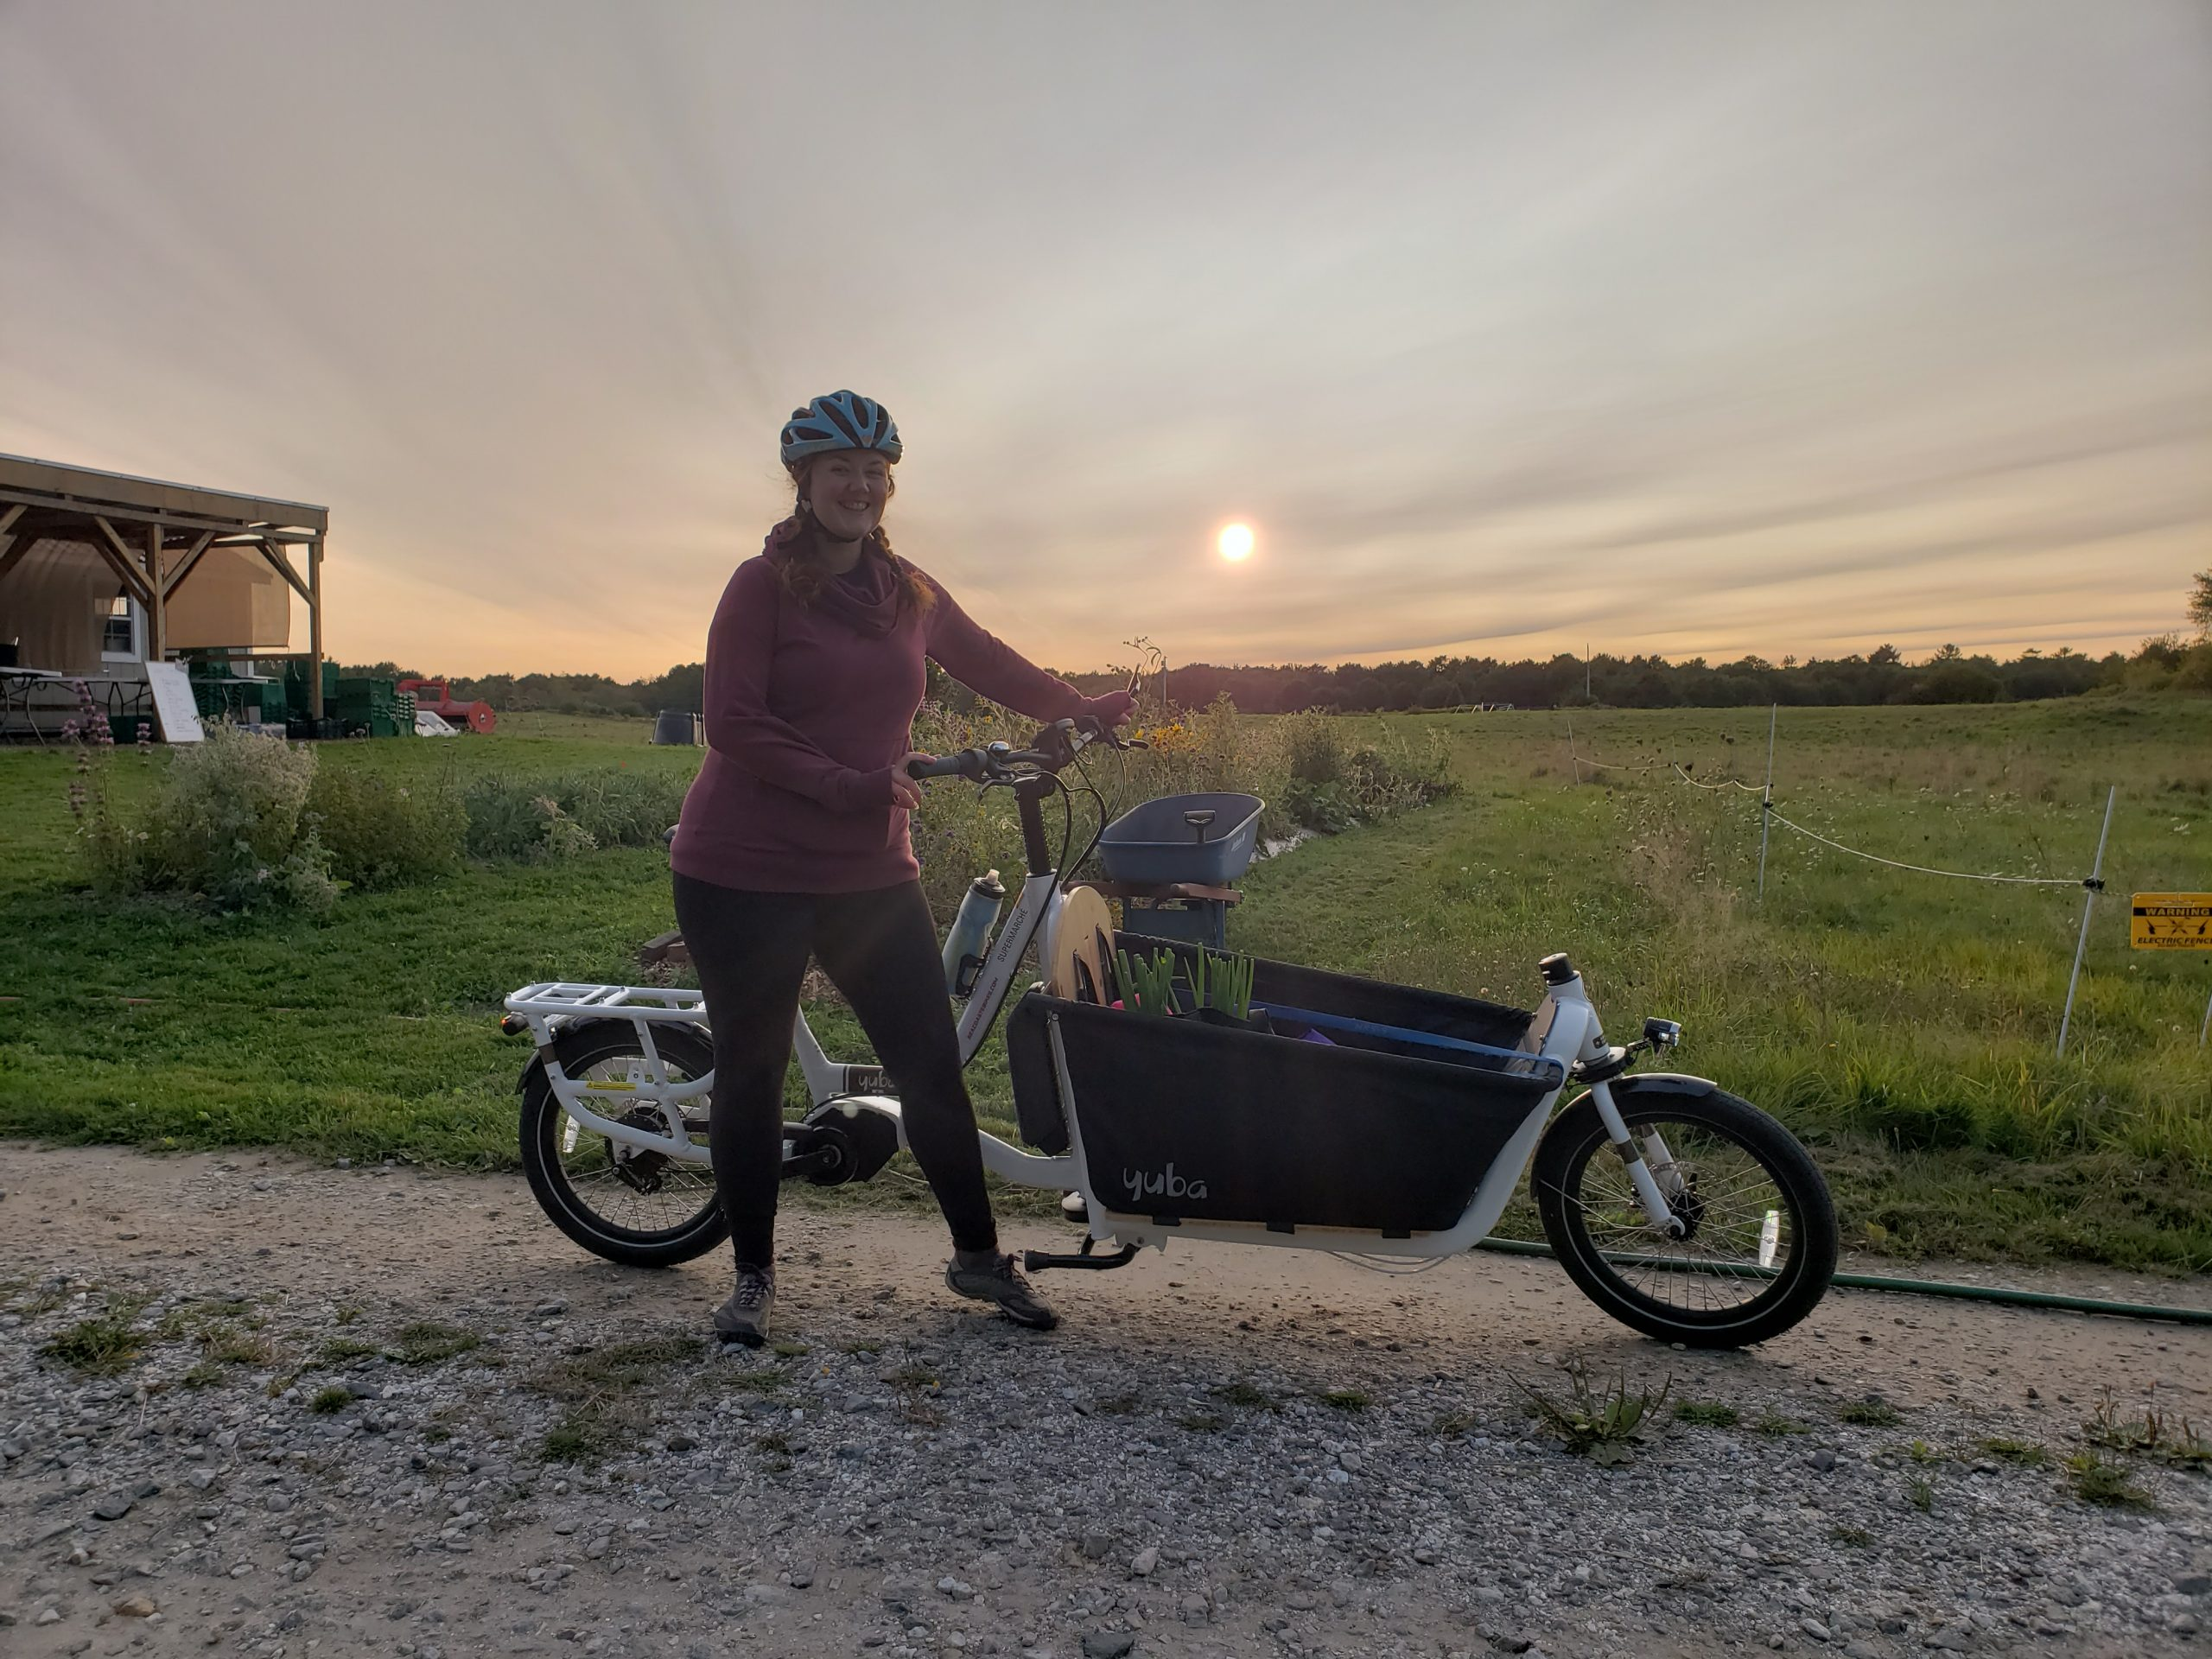 Yuba Cargo Bike Electric Supermarché Small Business